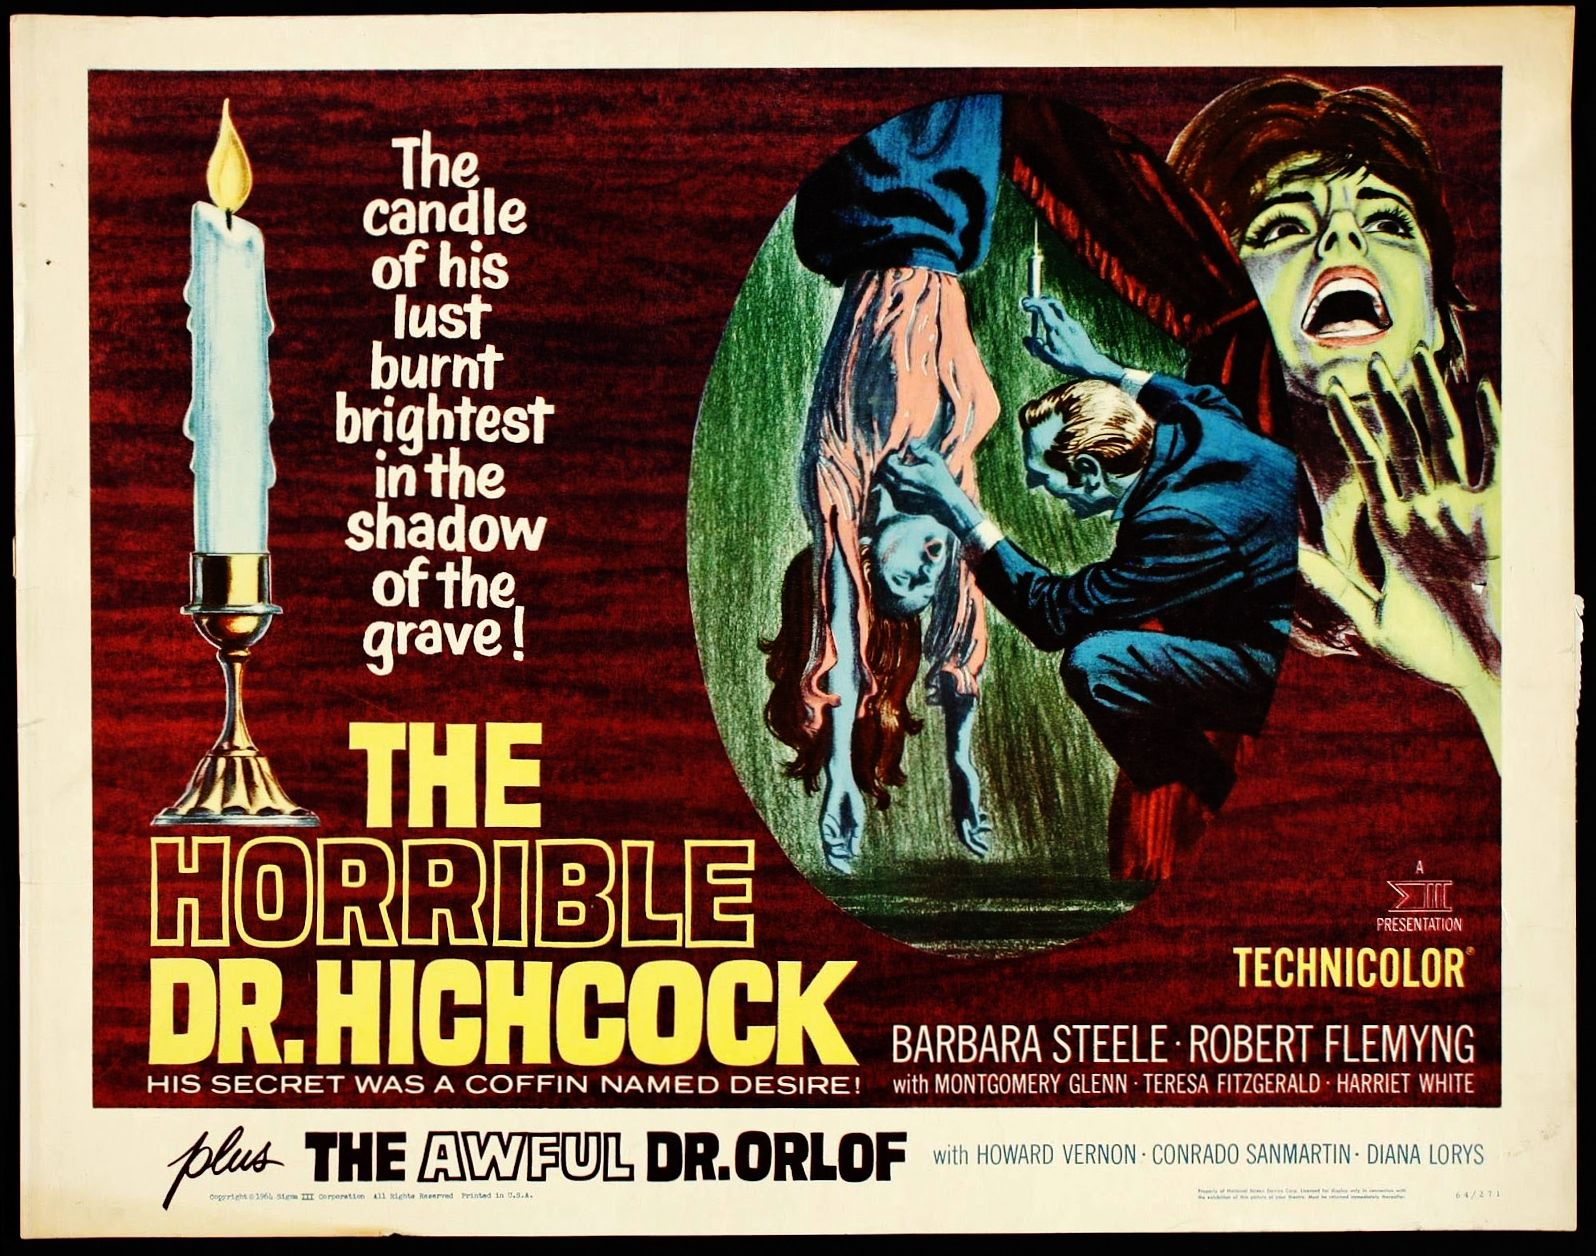 THE HORRIBLE DR. HICHCOCK 1962 poster